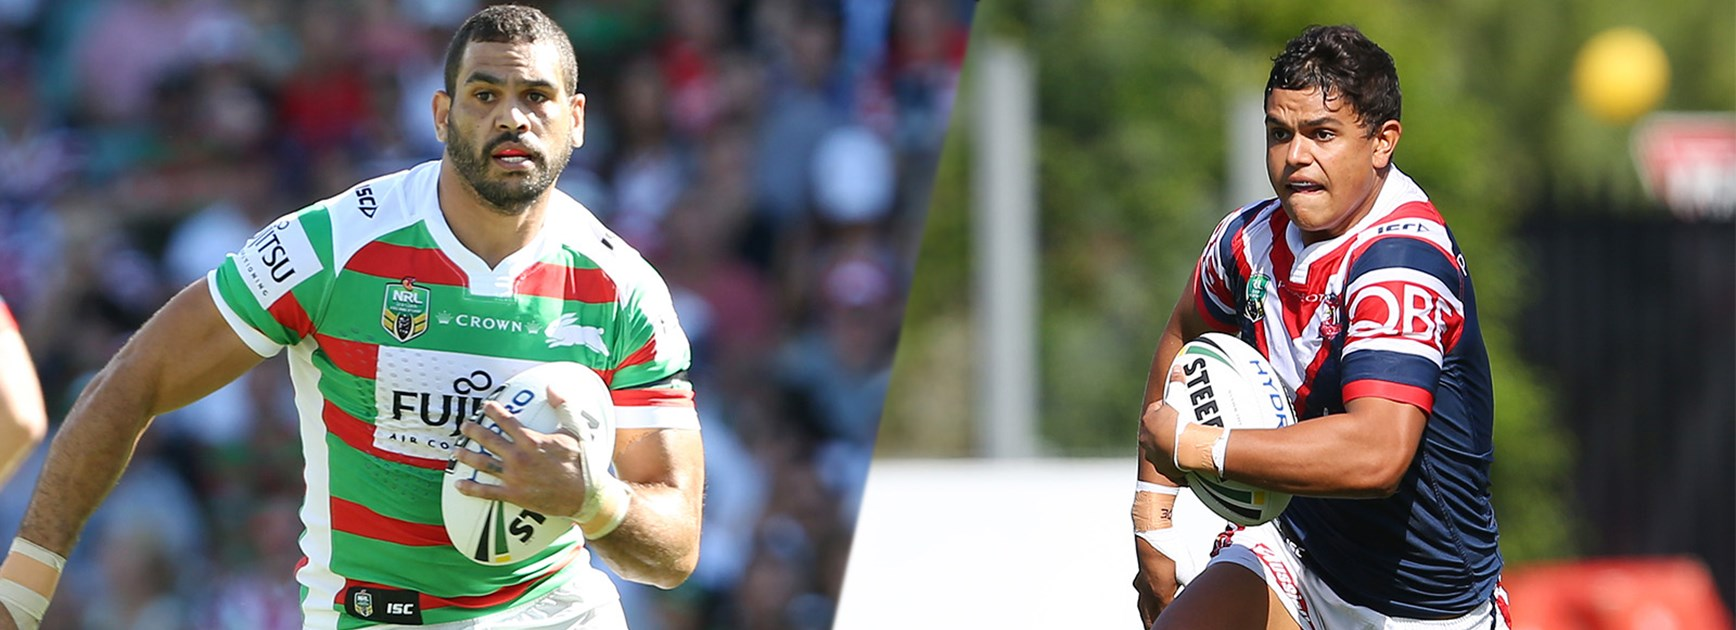 Greg Inglis takes on Latrell Mitchell when the Rabbitohs host the Roosters at ANZ Stadium.